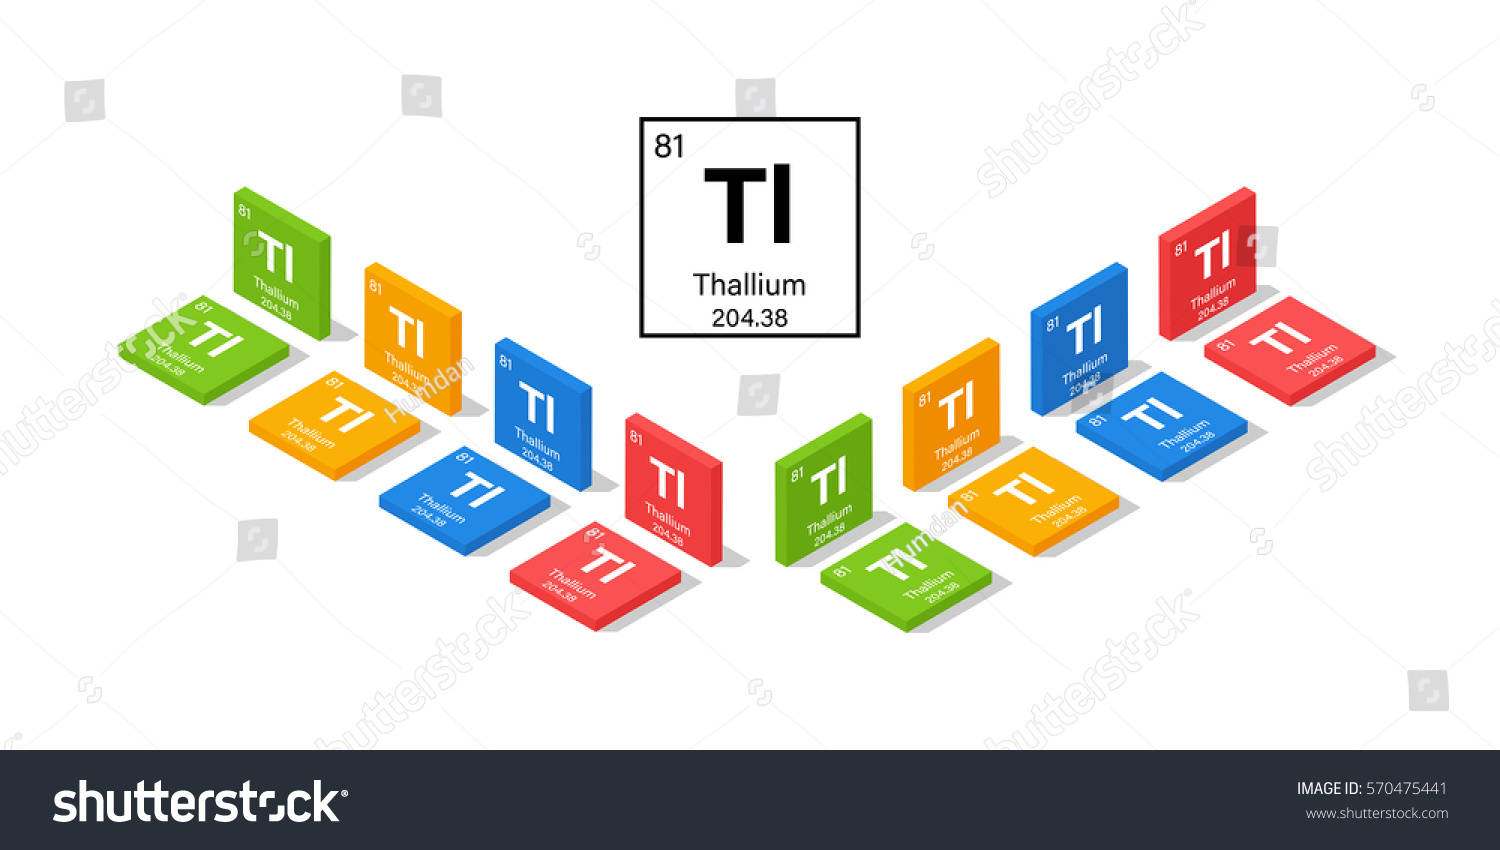 Tl on the periodic table gallery periodic table images tl periodic table gallery periodic table images element tl periodic table images periodic table images periodic gamestrikefo Images